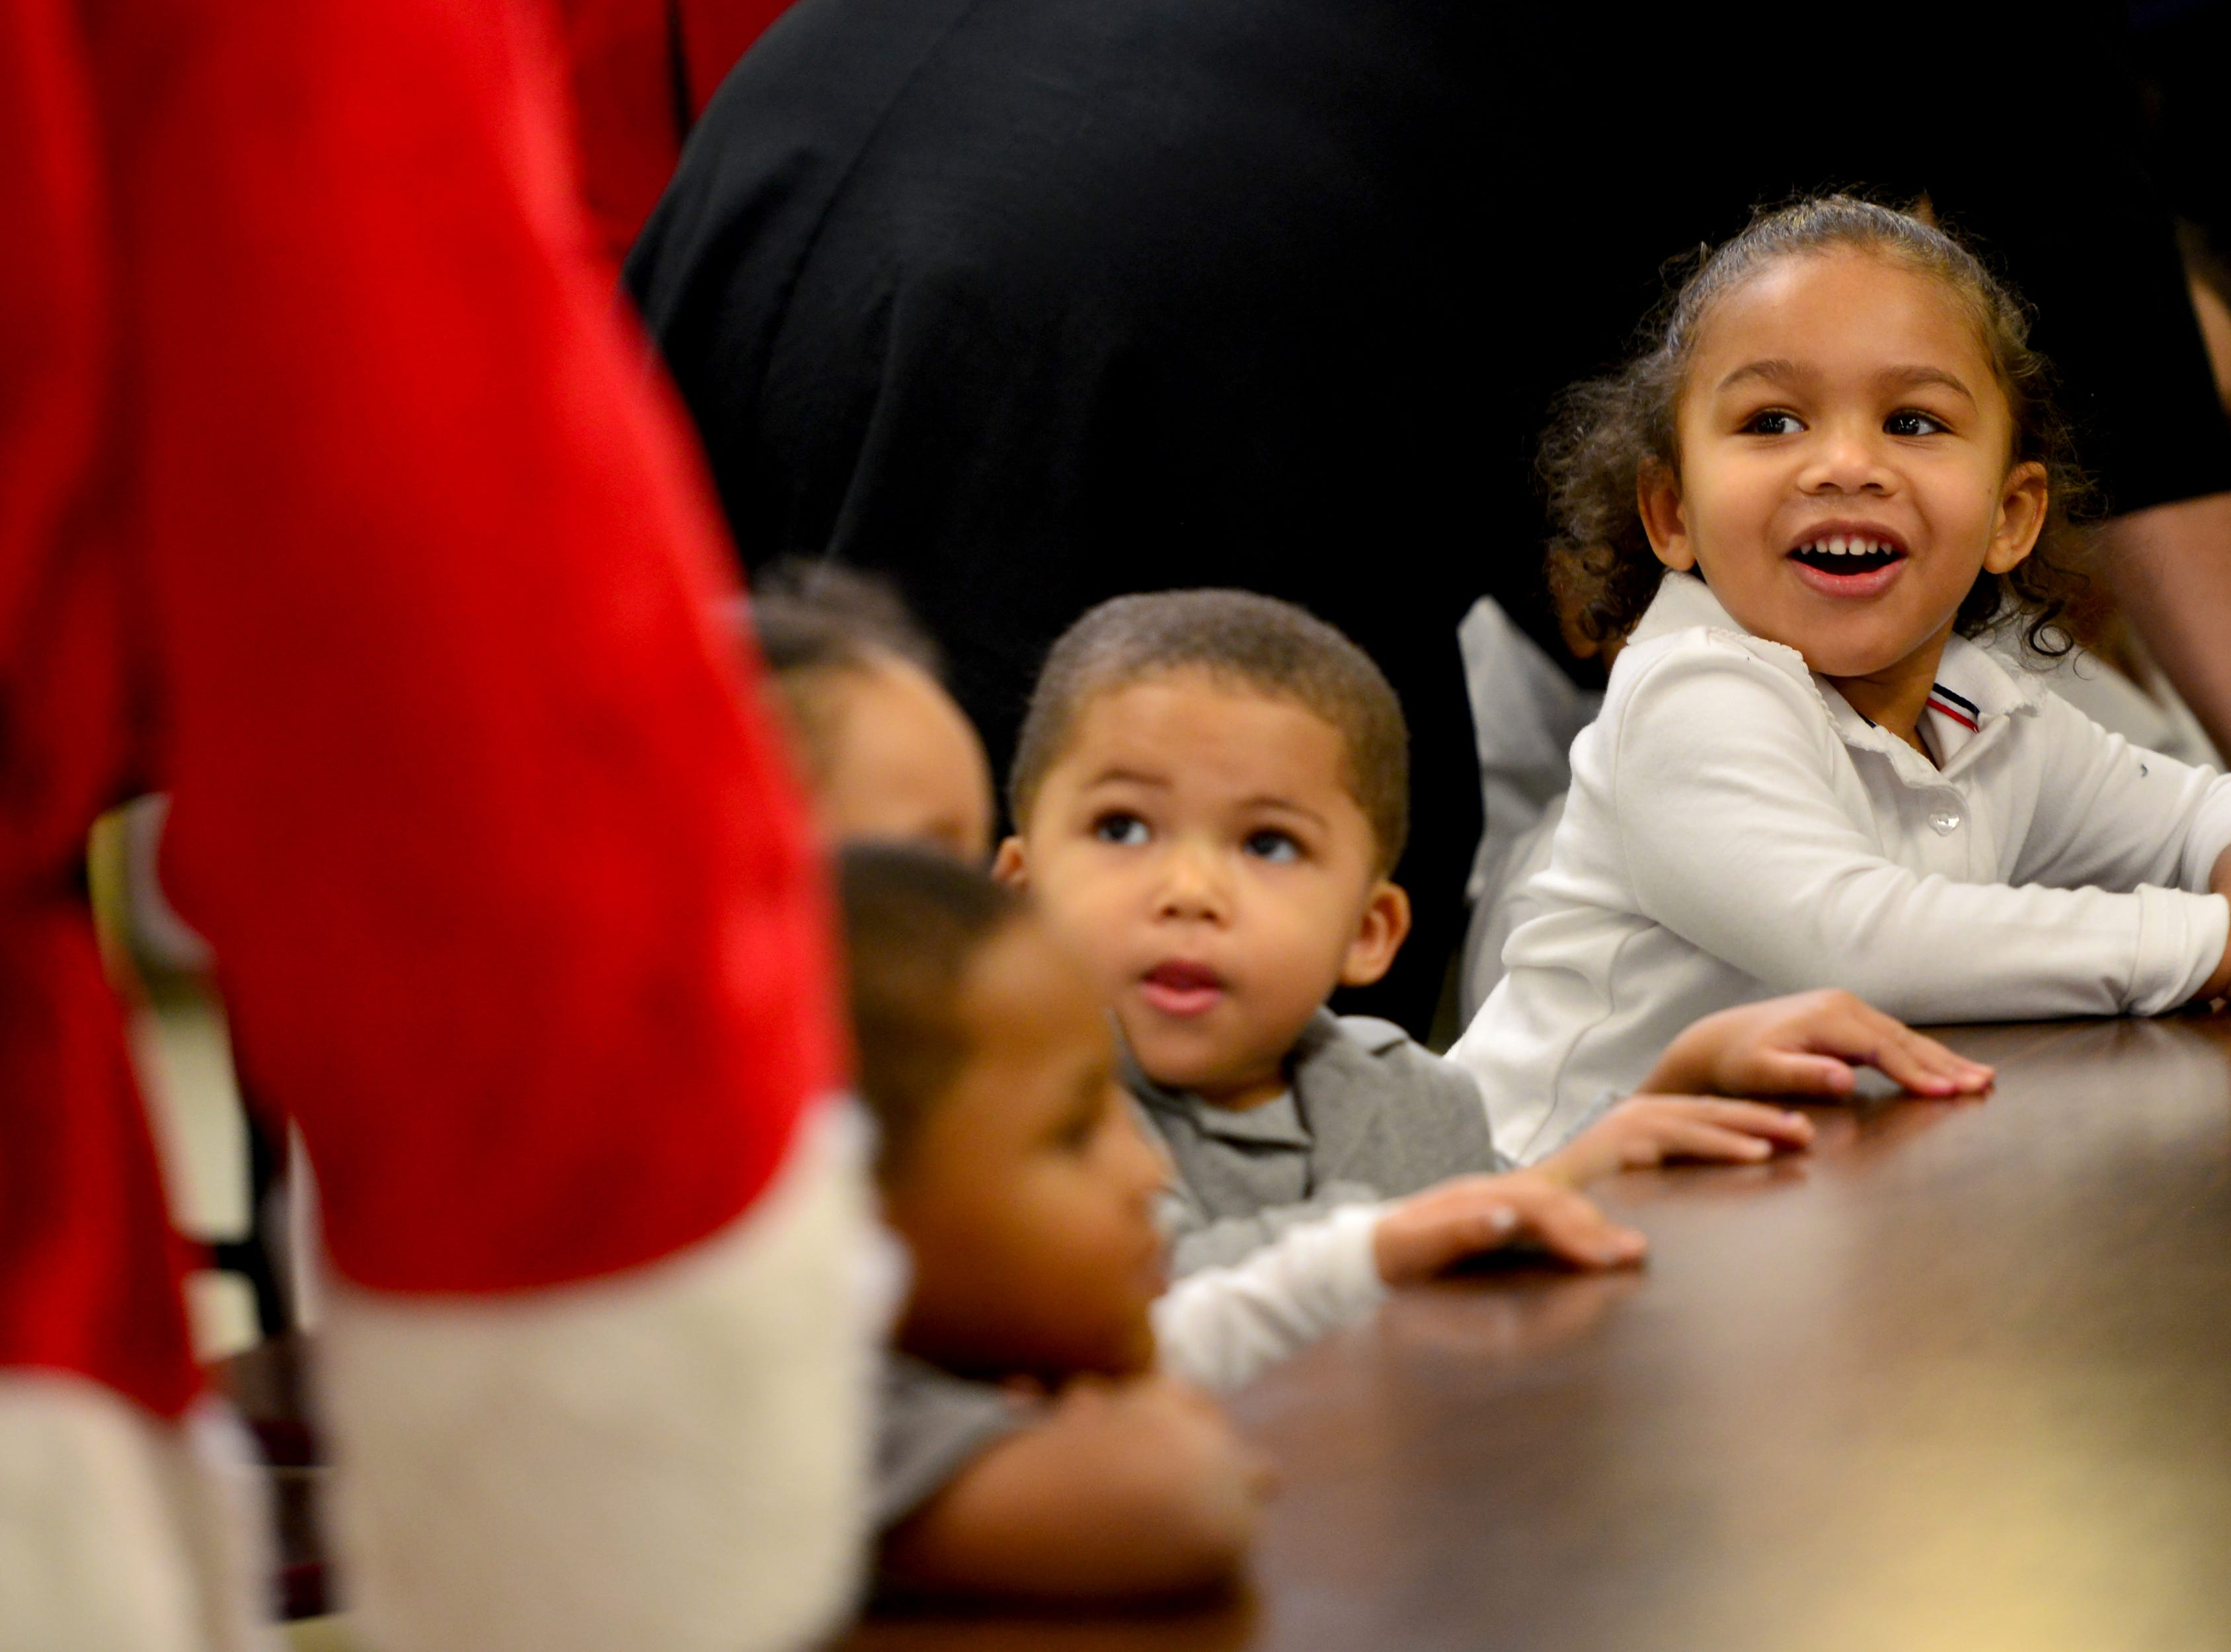 Children smile as they look up at Jamie Dyke, a member of the Rotary, dressed as Santa Claus. The Paterson Rotary held their eighth annual Christmas Coat Drive in Paterson, on Monday morning December 17, 2018. The club donated coats to all the students at Edward W. Kilpatrick Elementary School. The Rotary Club raised funds from its members and the community to buy 380 coats for the students.